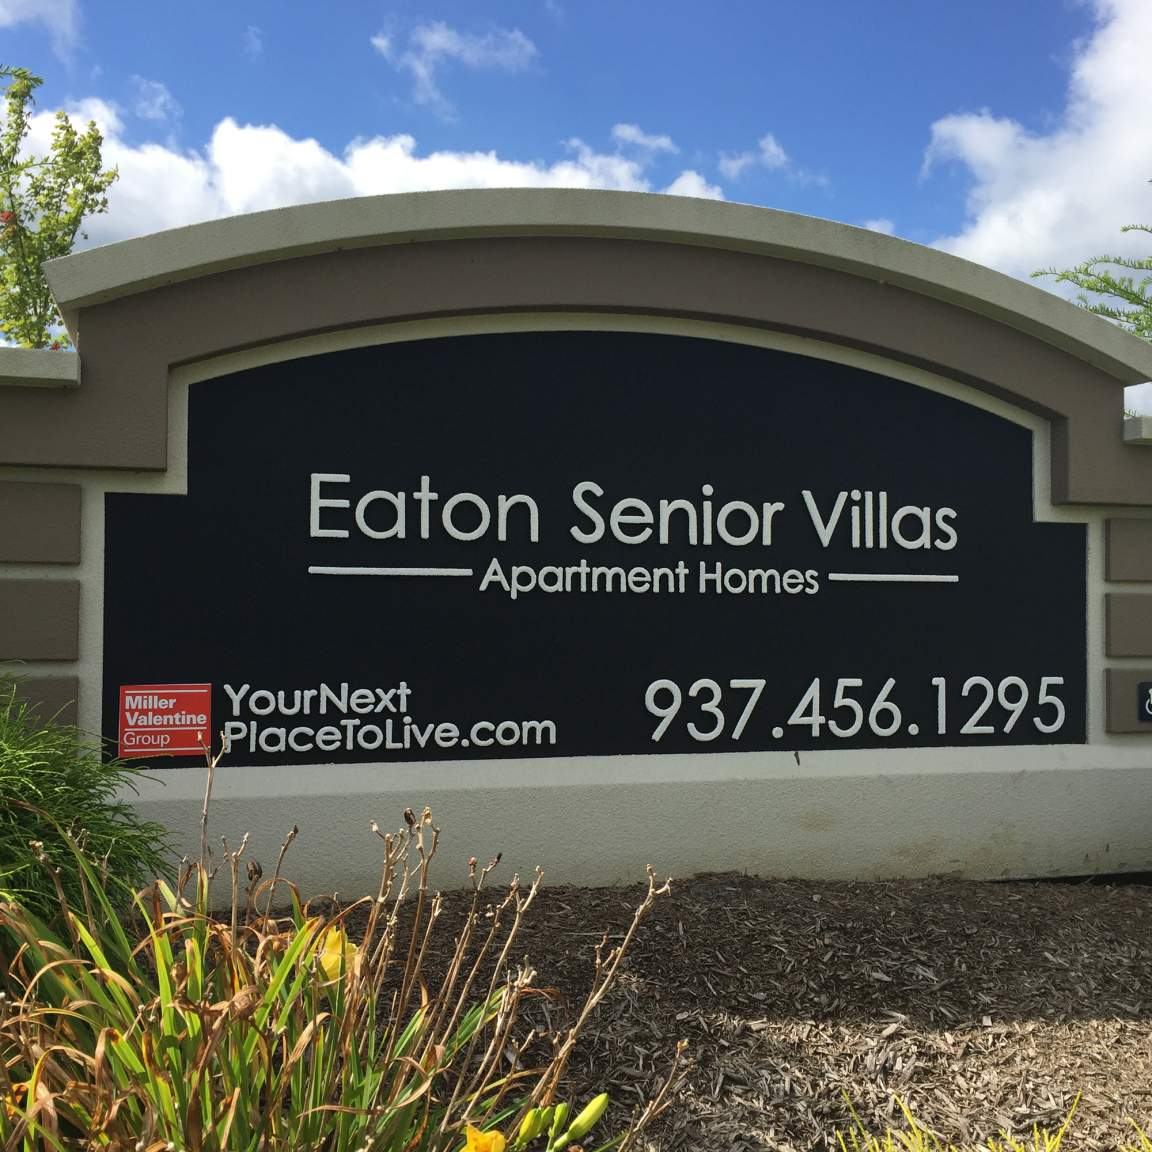 eaton senior singles Eaton senior villas adult community (eaton, oh) a beautiful community in a natural, park-like setting, eaton senior villas has more than you would expect for the price.